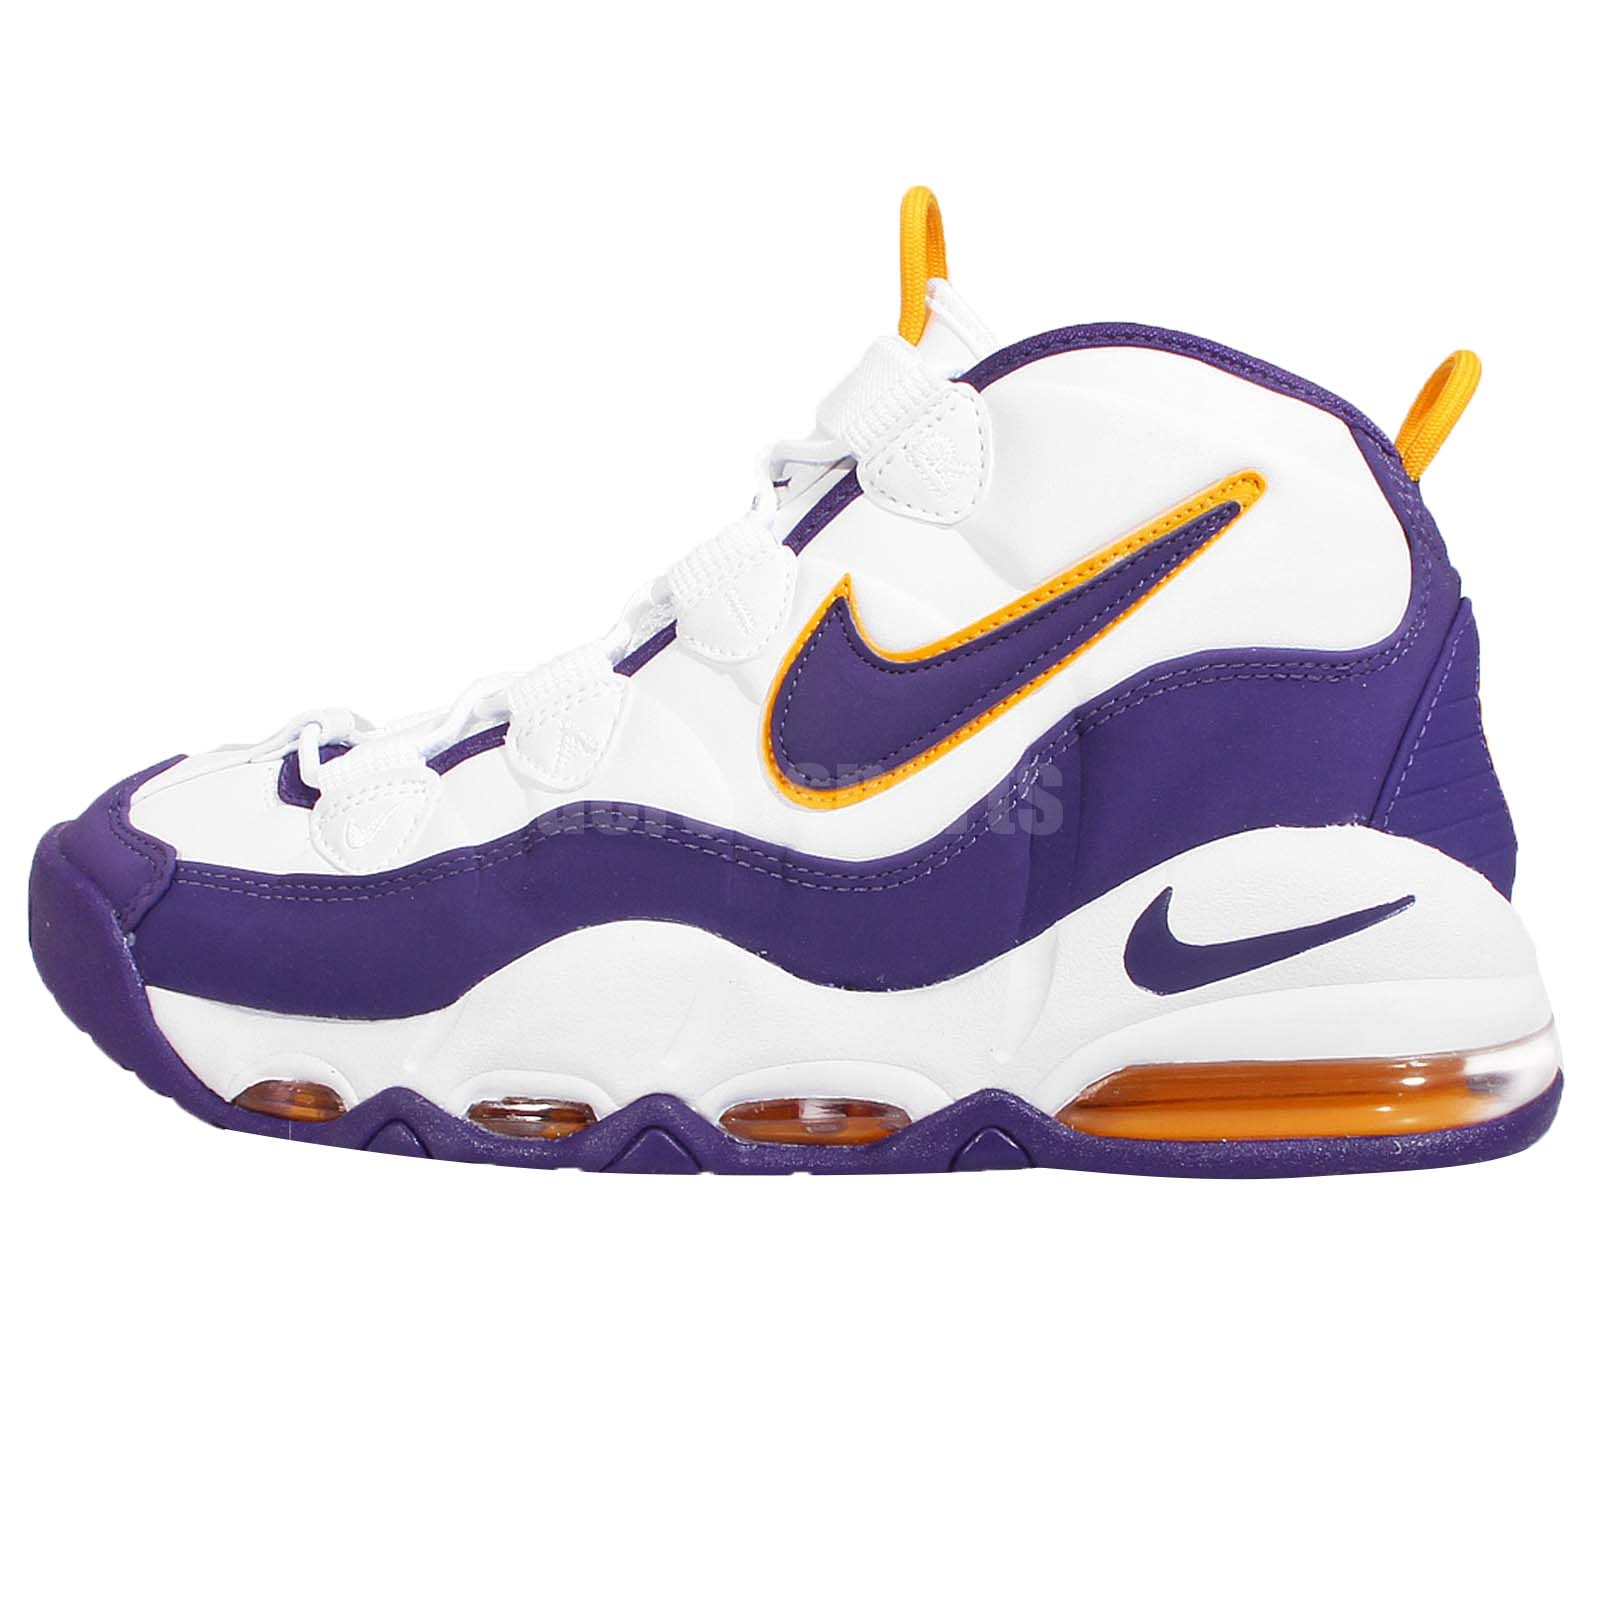 Nike Air Max Uptempo LA Lakers Mens Retro Basketball Shoes Sneakers  311090-103